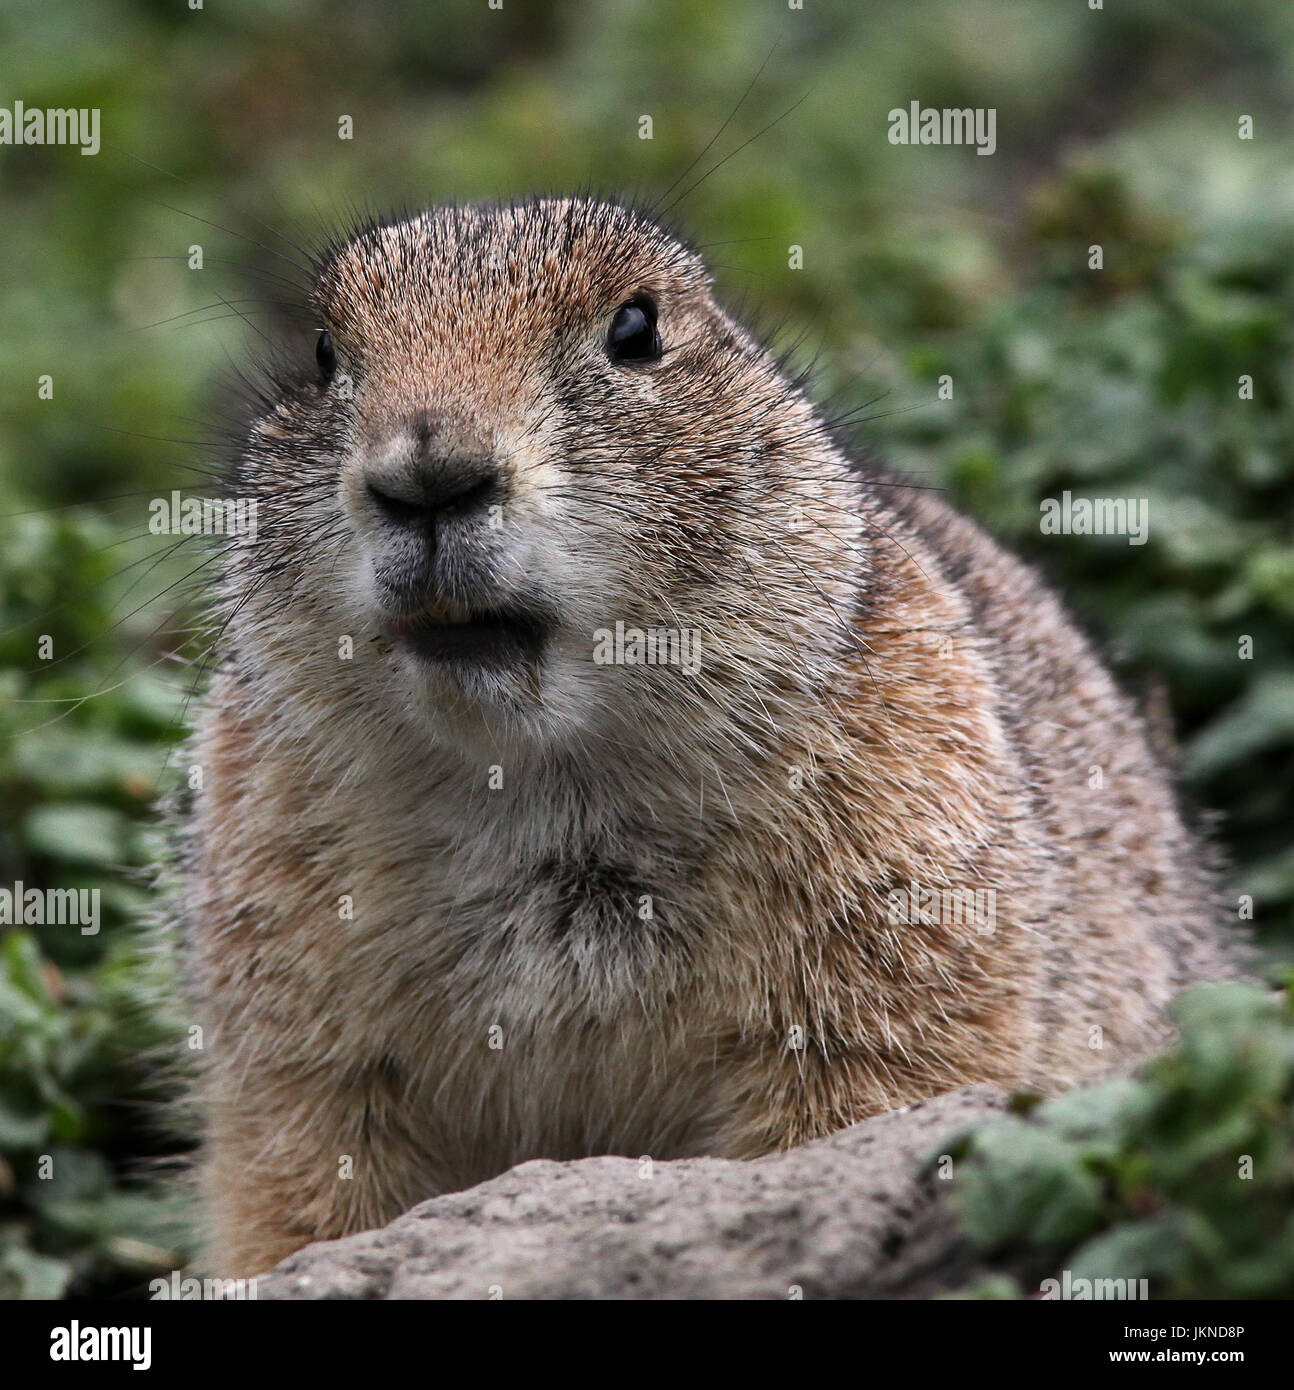 Black-tailed prairie dog.Cynomys ludovicianus.A rodent of the family Sciuridae. - Stock Image